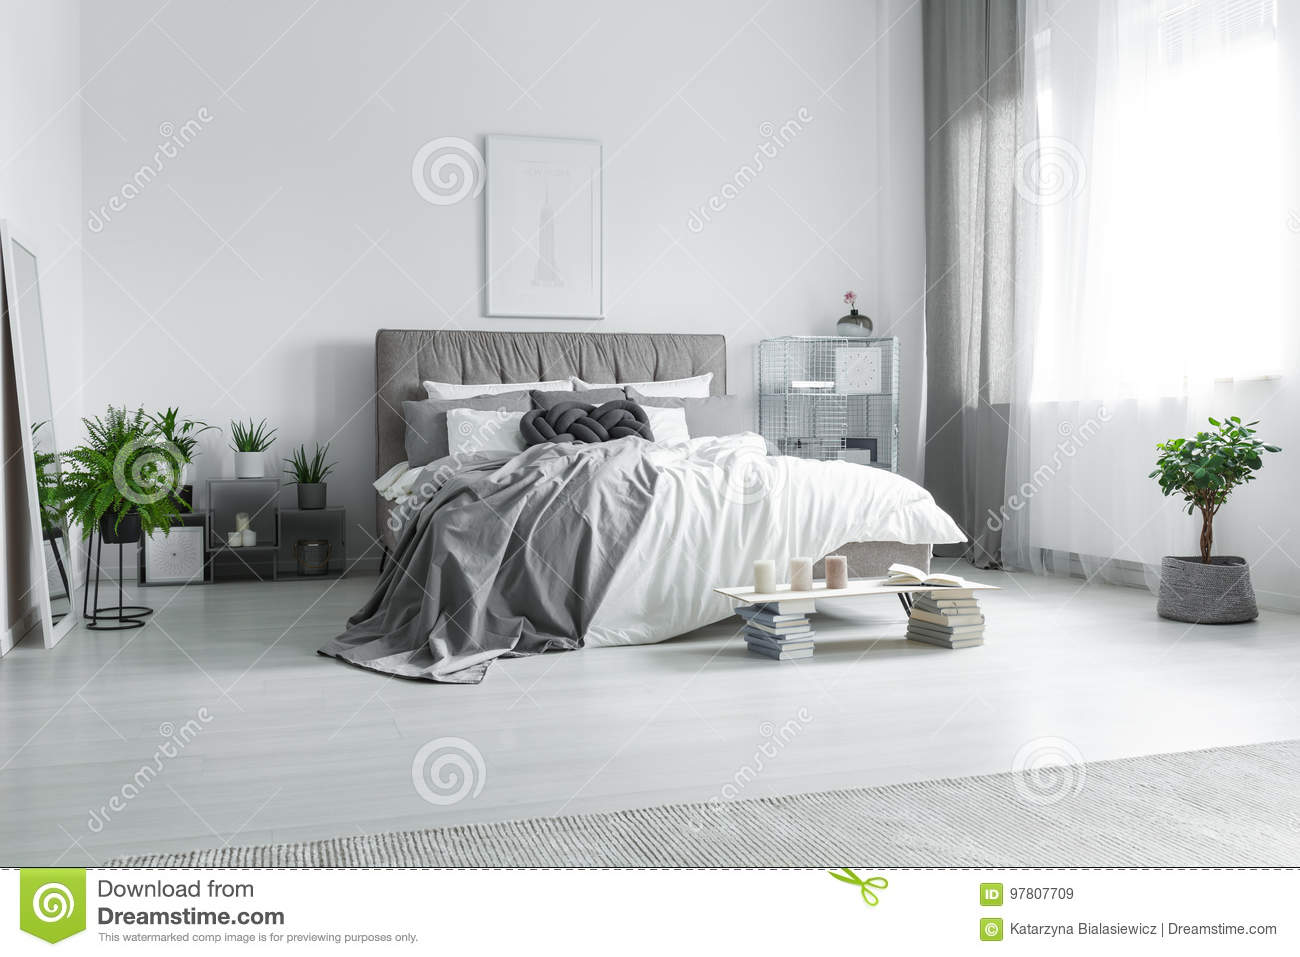 Messy bed in hotel room stock image. Image of candles - 97807709